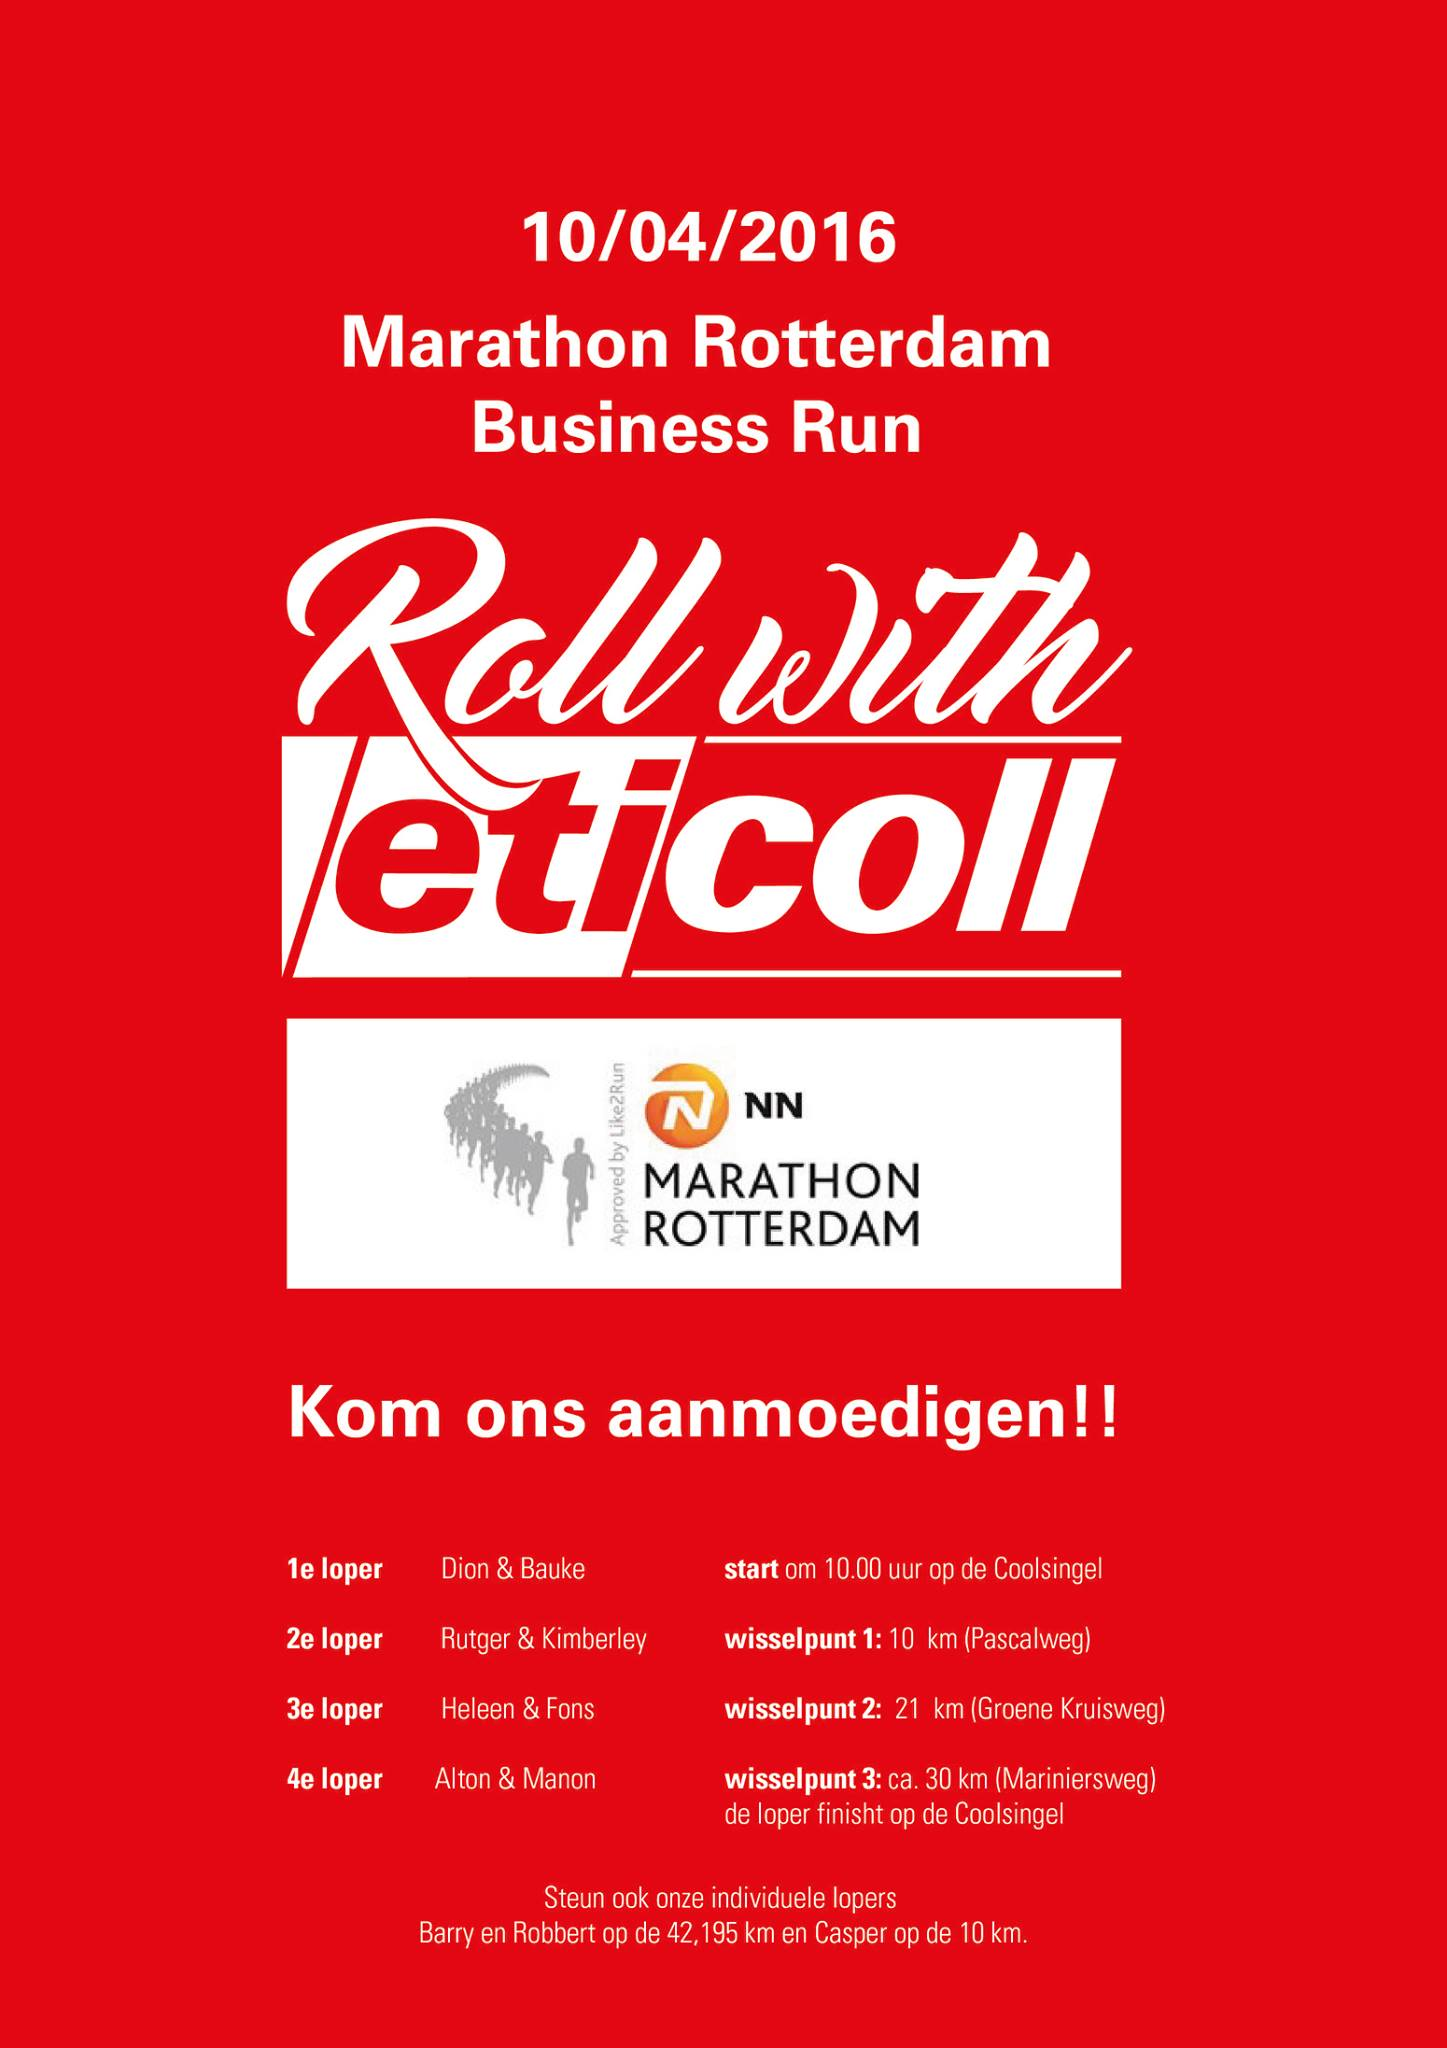 Business Run Rotterdam Marathon Eticoll